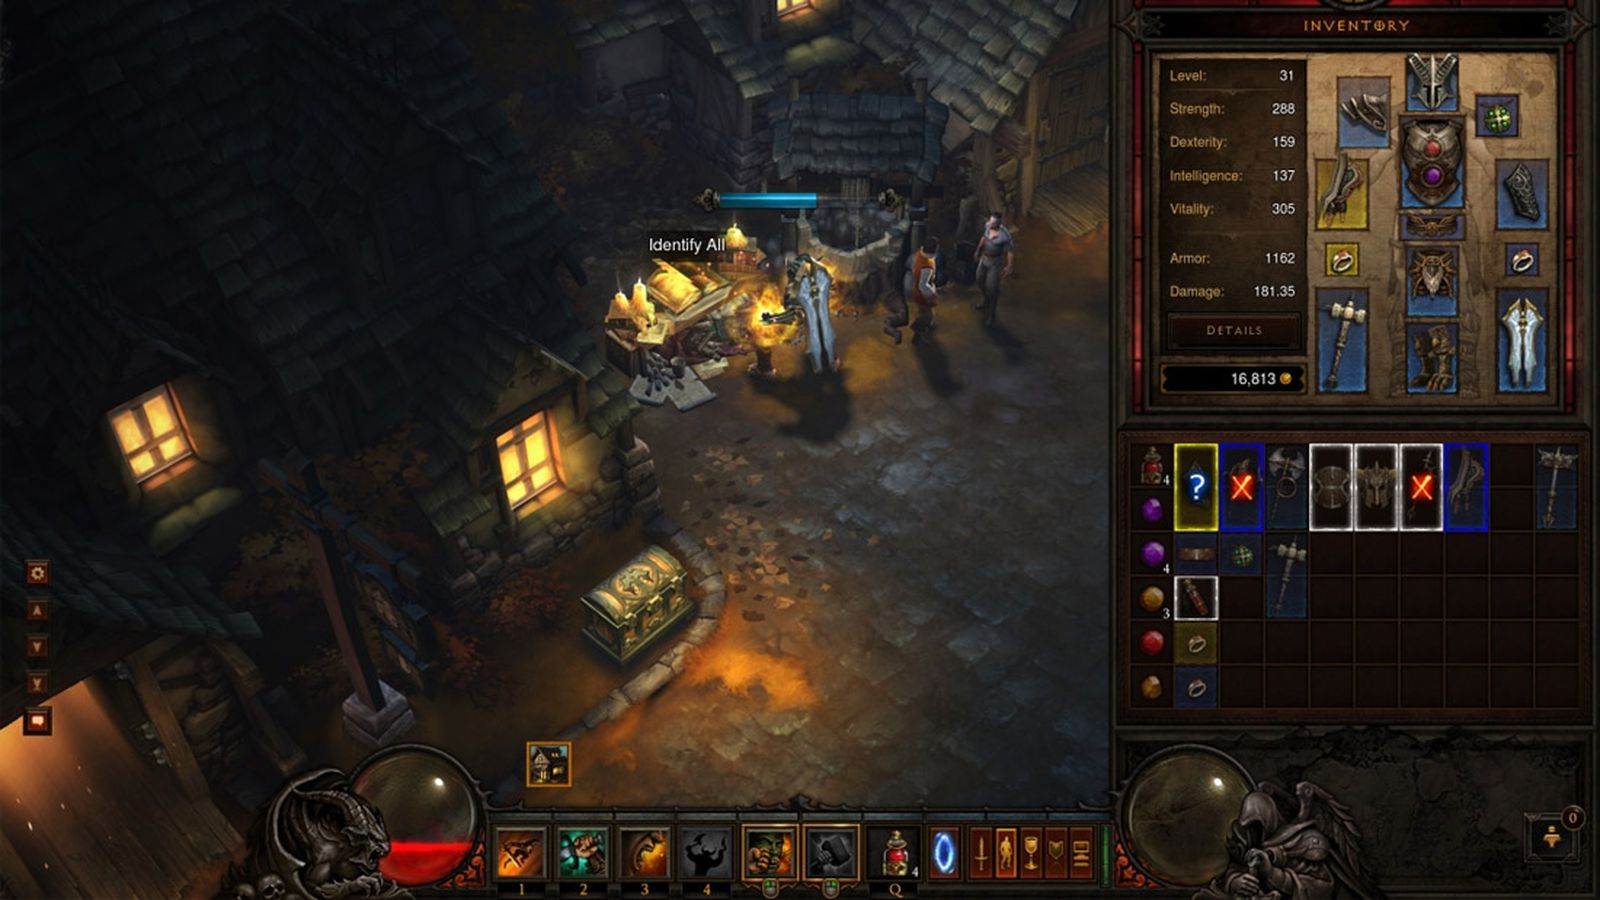 Diablo 3 multiplayer matchmaking